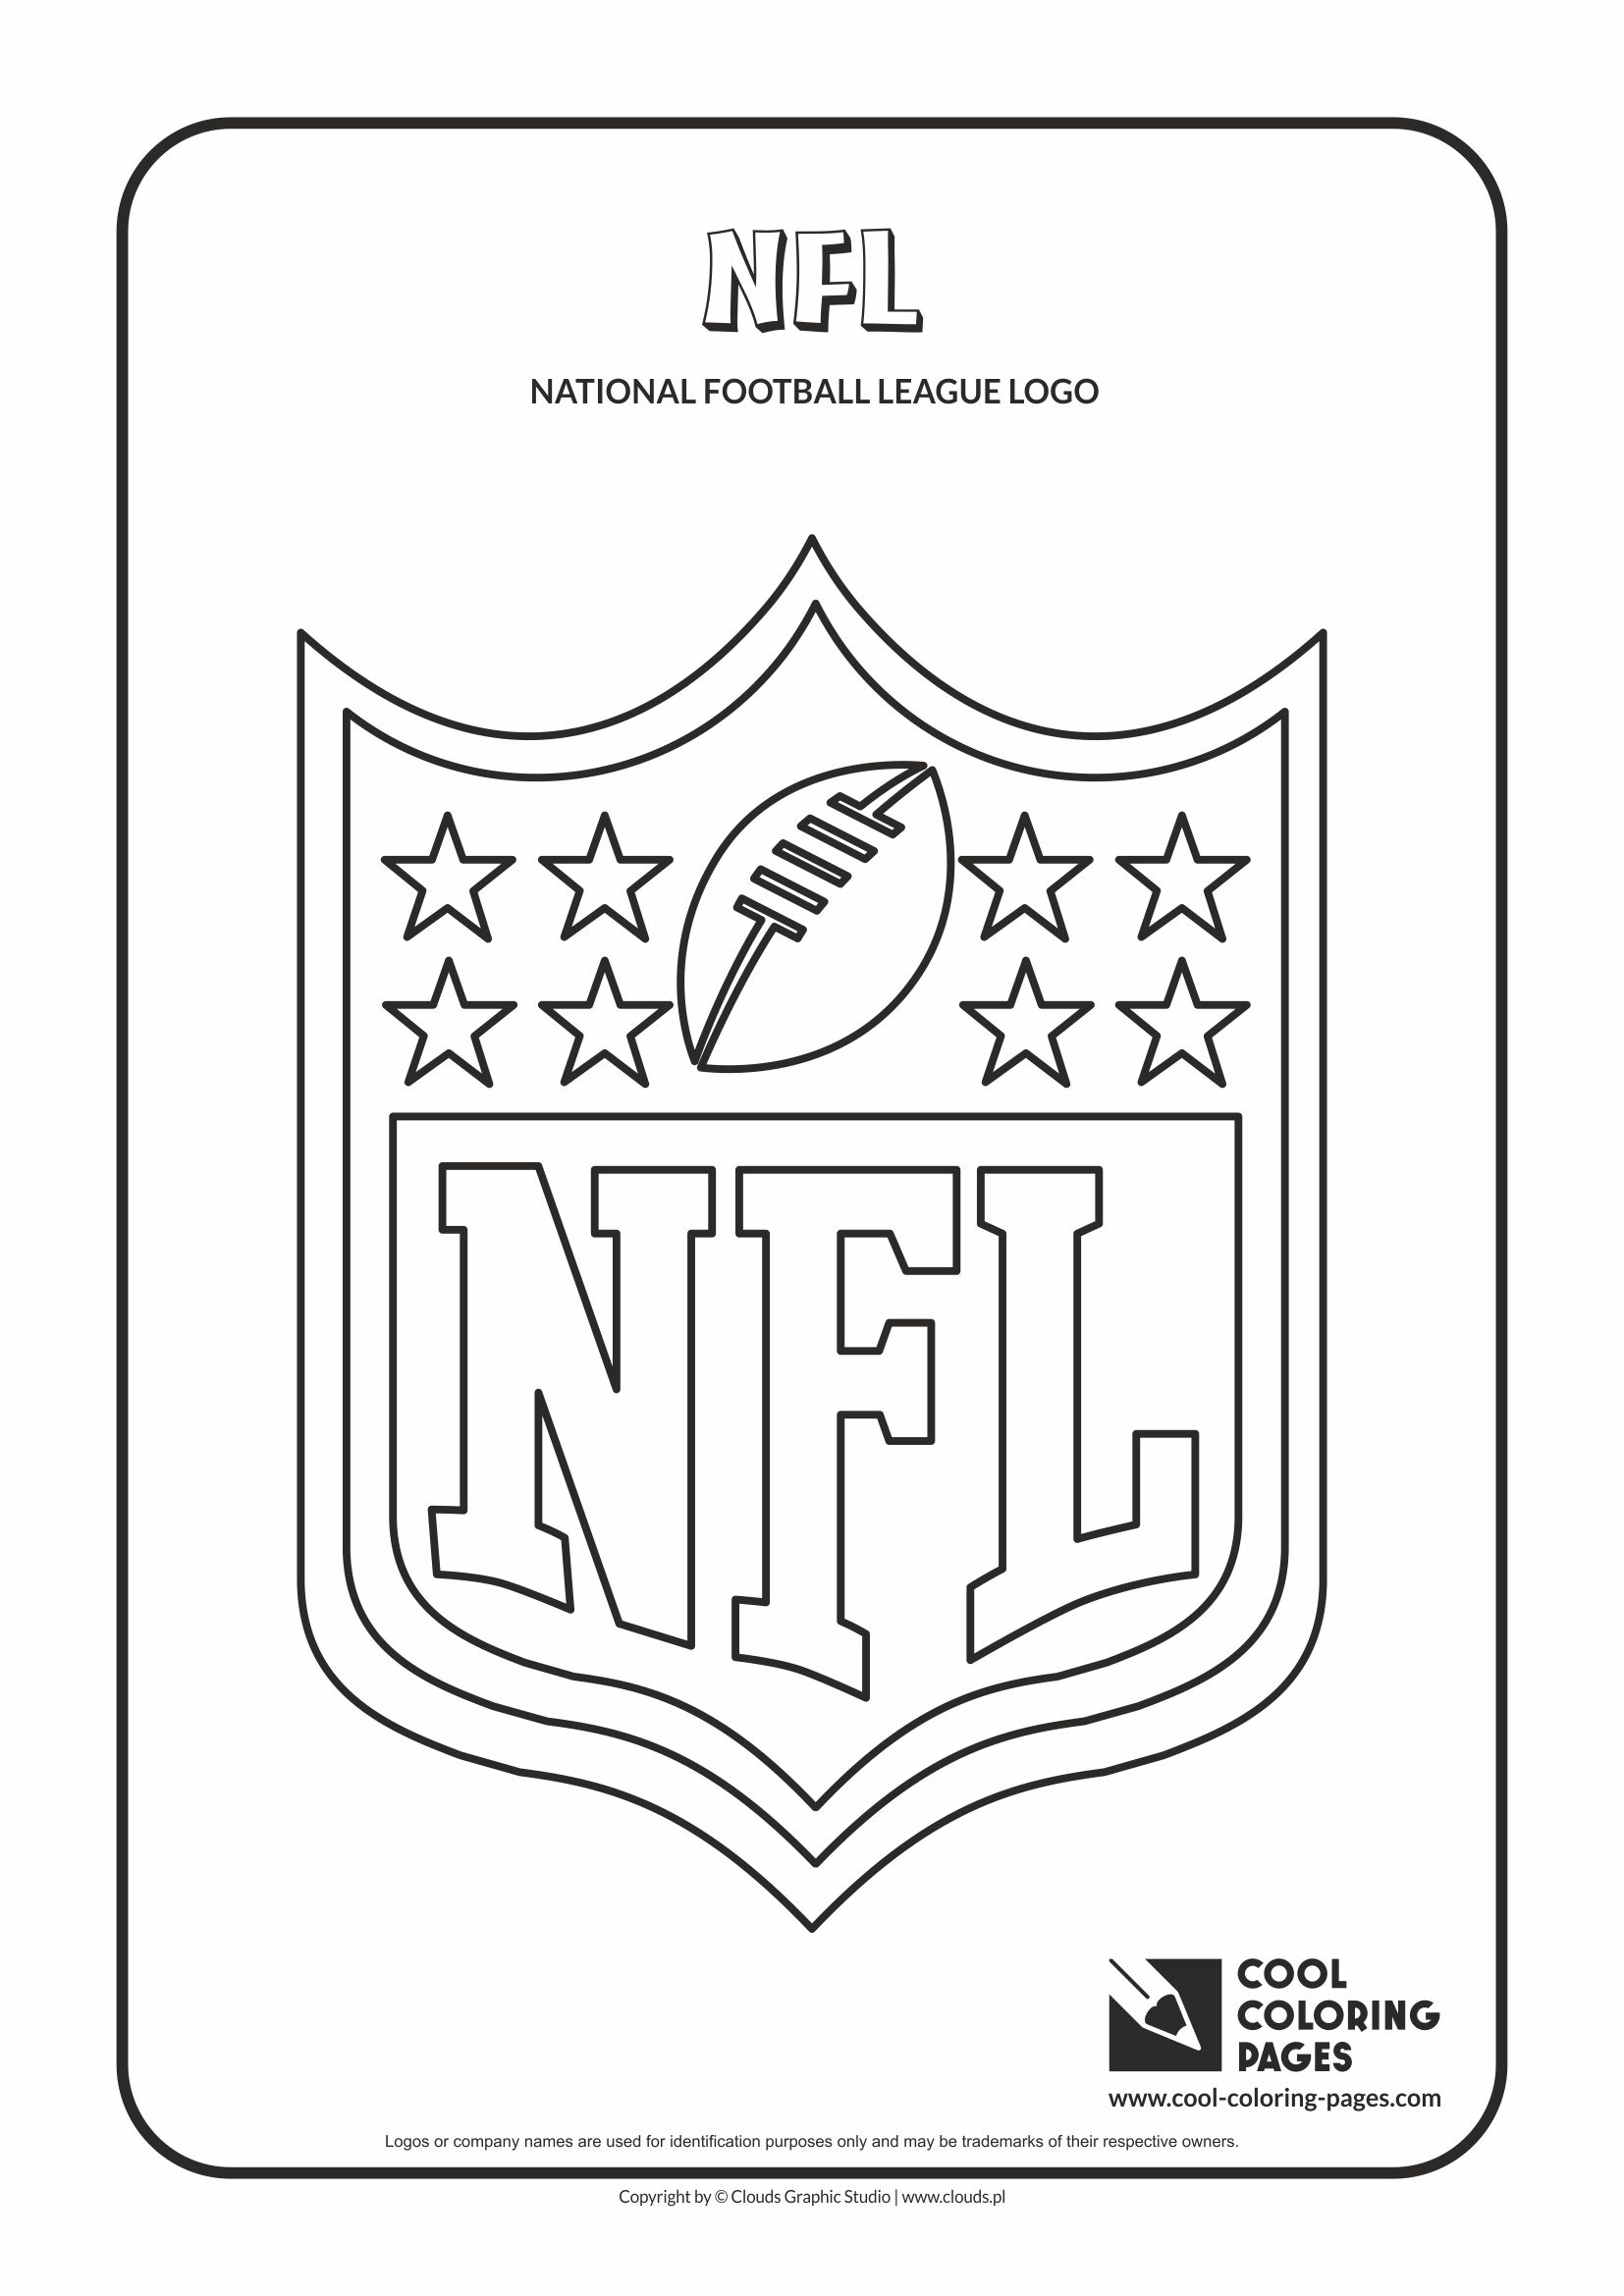 Cool Coloring Pages - NFL logo coloring page